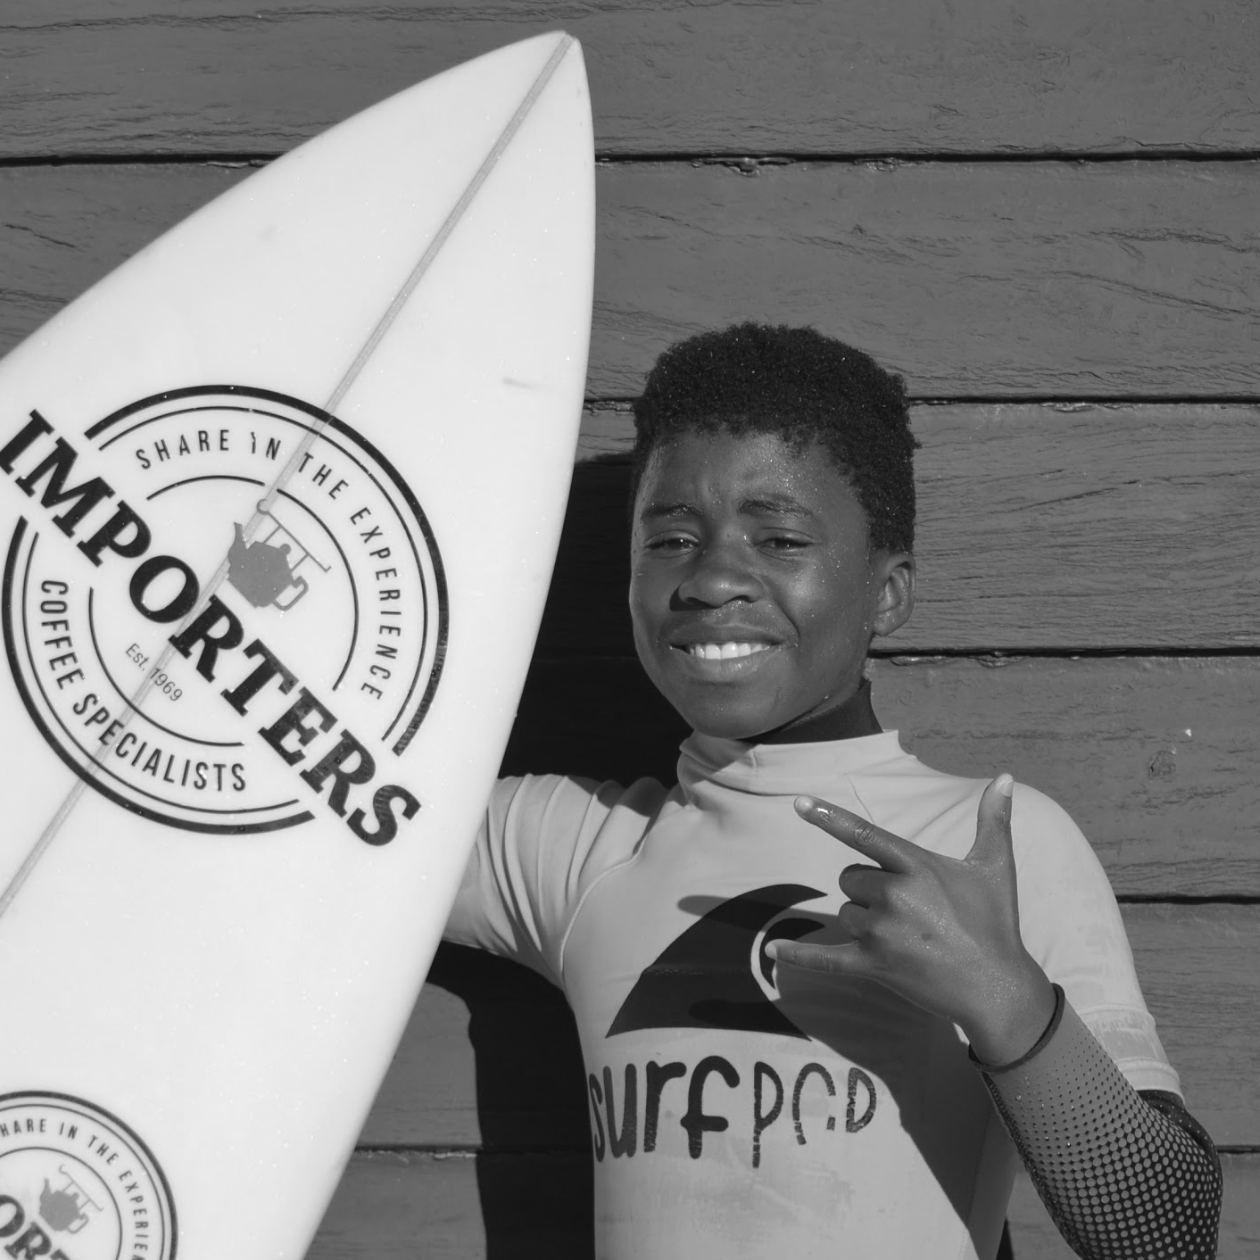 """I like surfing so much and I really like Surfpop! I feel free when I am with Surfpop. If you like you can call Surfpop a 'surf family' or you can say 'Surfpop we like it.' One day I want to be a pro surfer. I want everyone to recognise me as a surfer boy, yes!!!"""